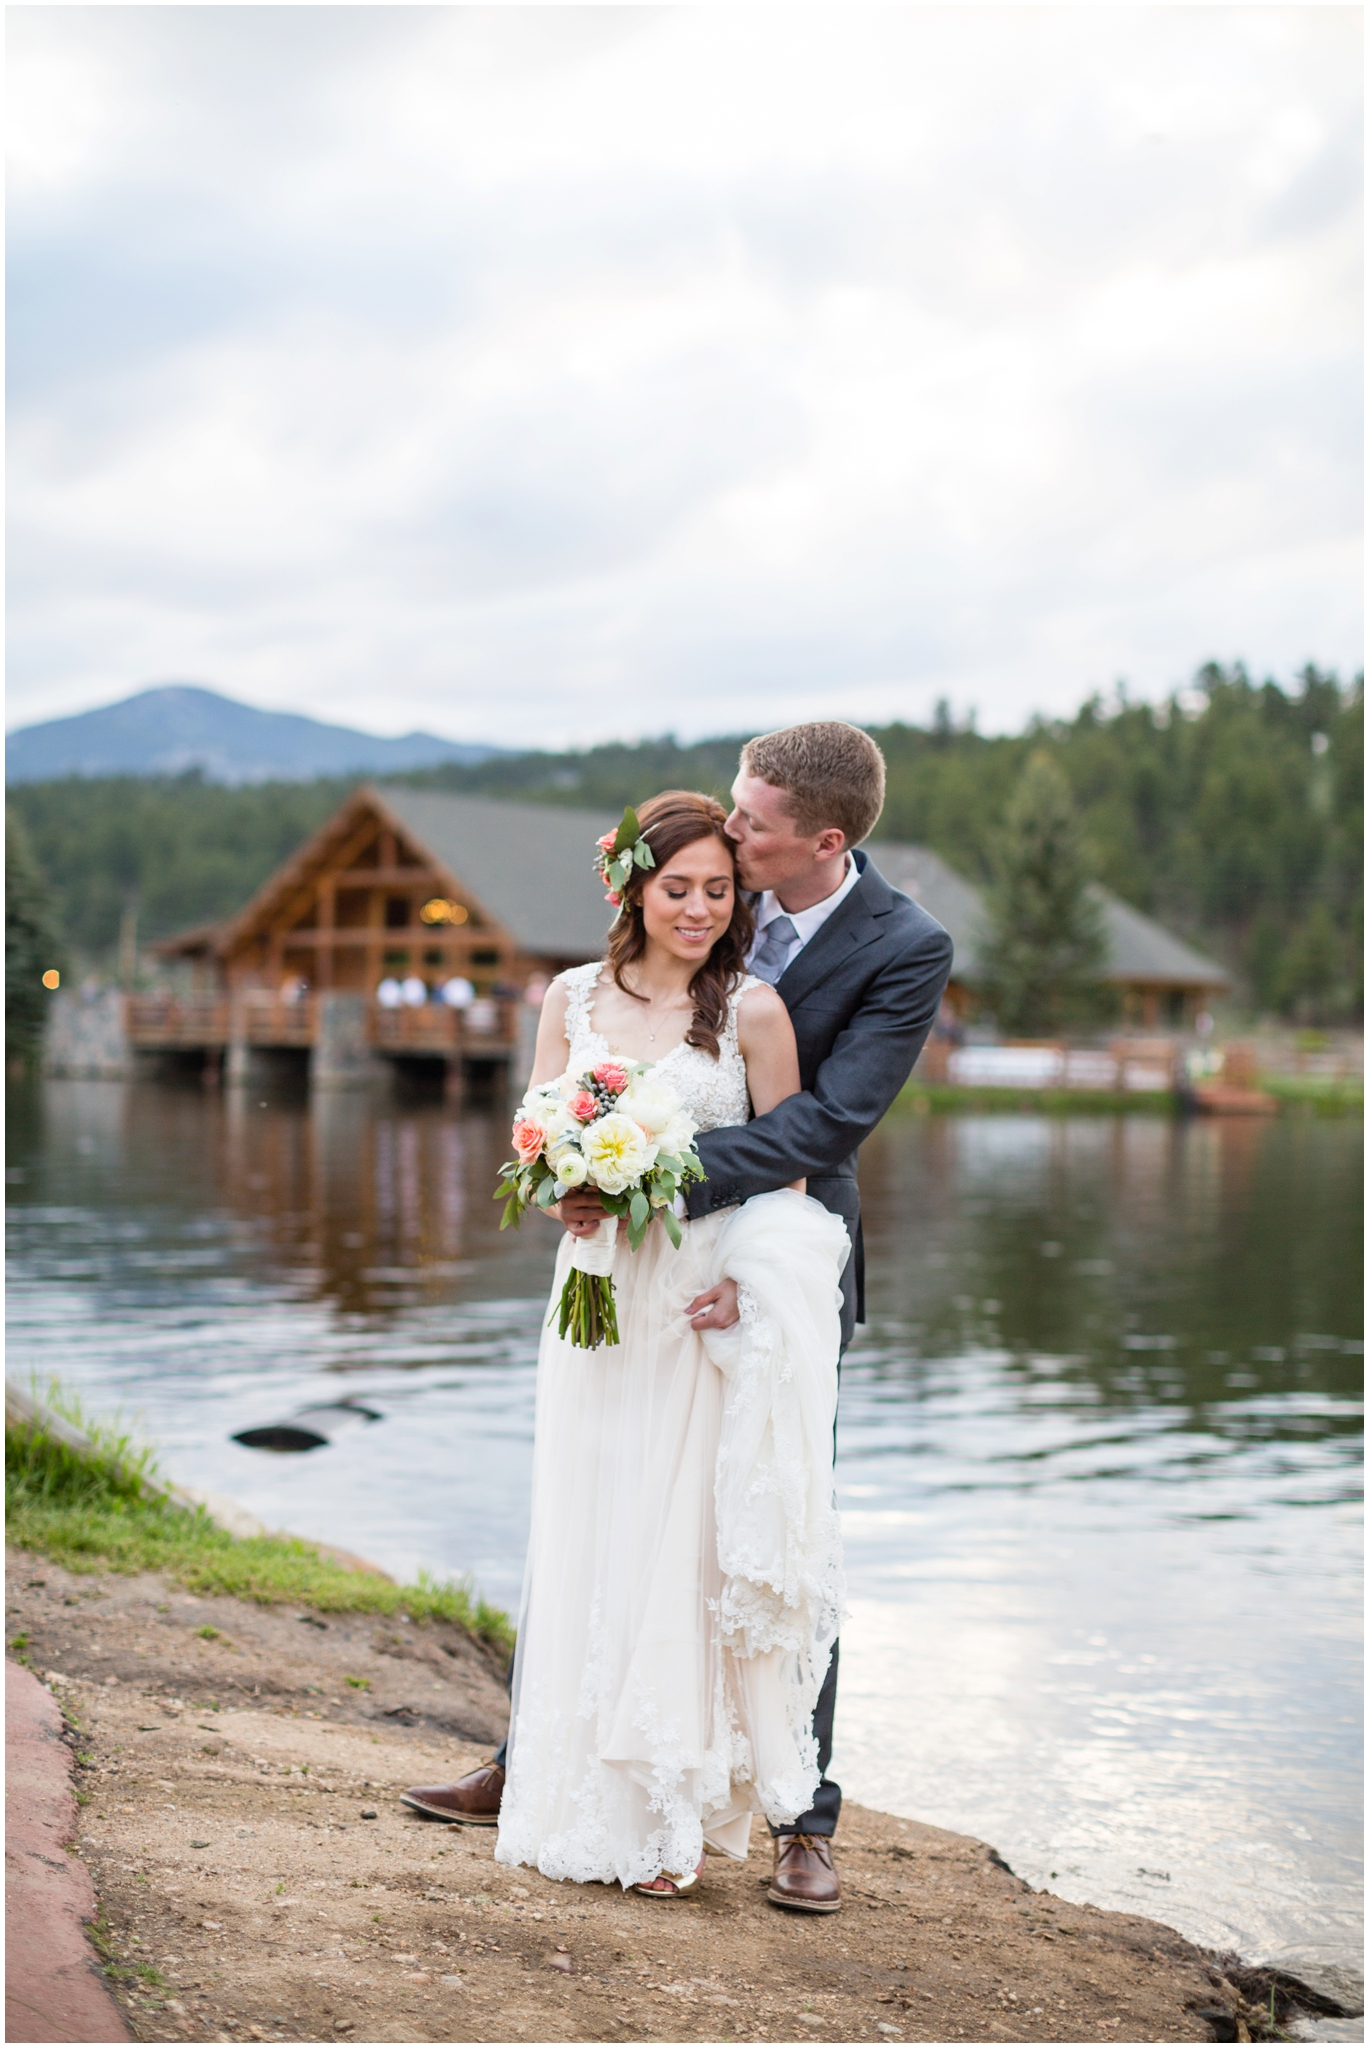 Wedding_Phtoography_at_Evergreen_Lake_house_Ashley_McKenzie_Photography.JPG